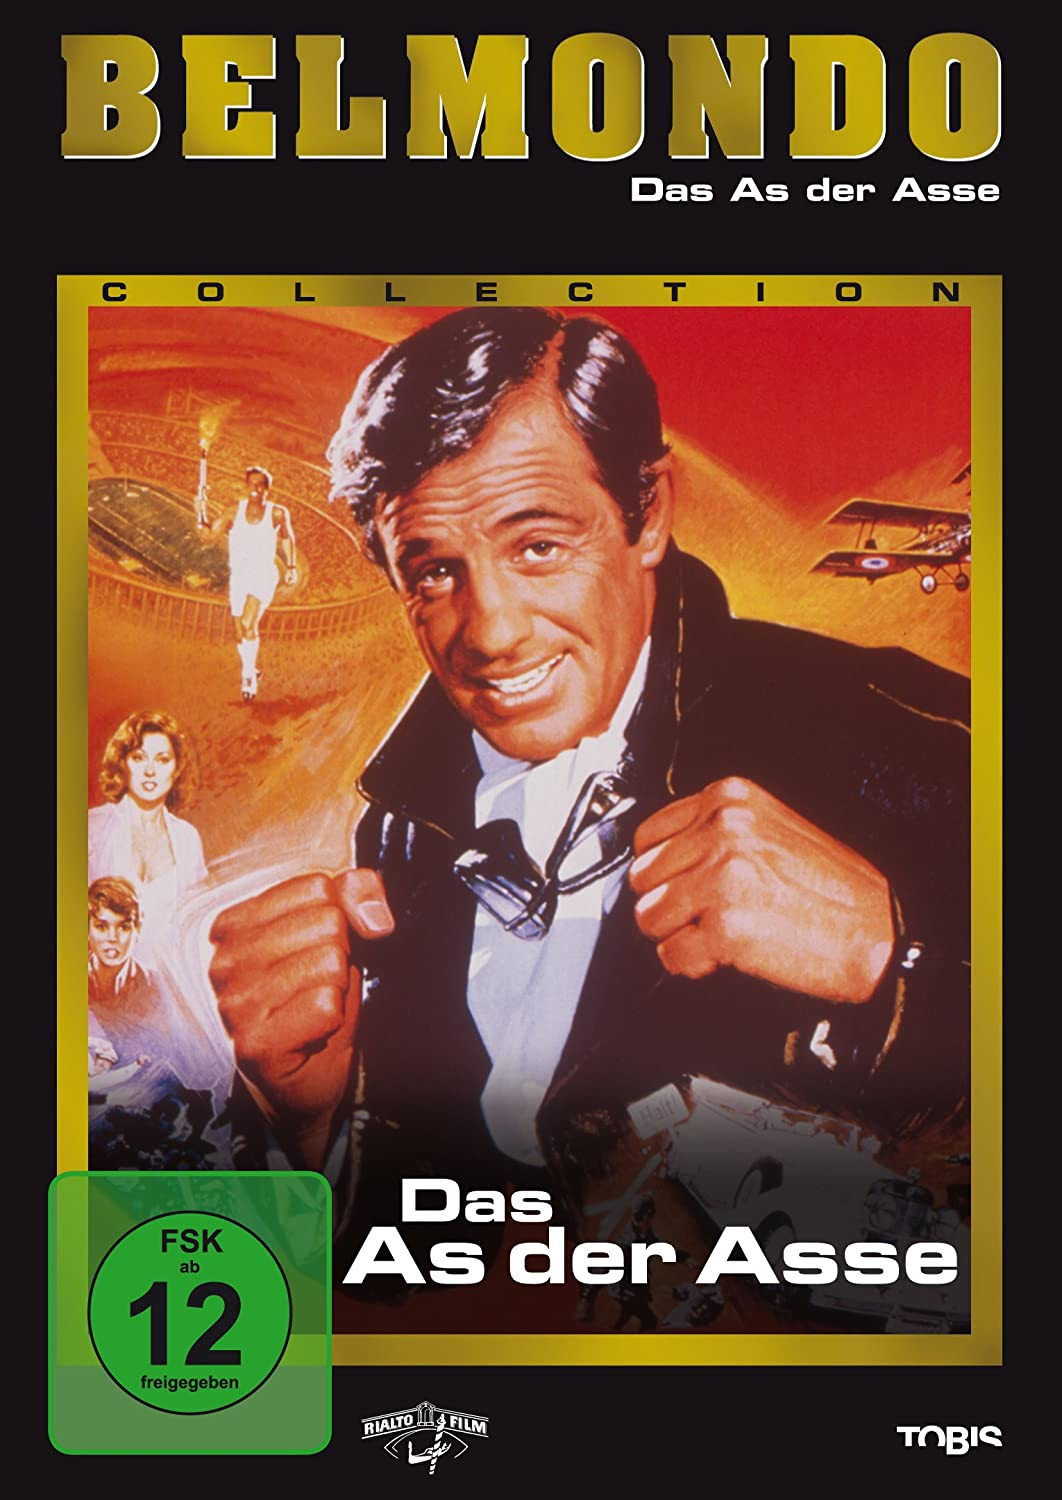 Das As der Asse - Belmondo Collection (DVD)